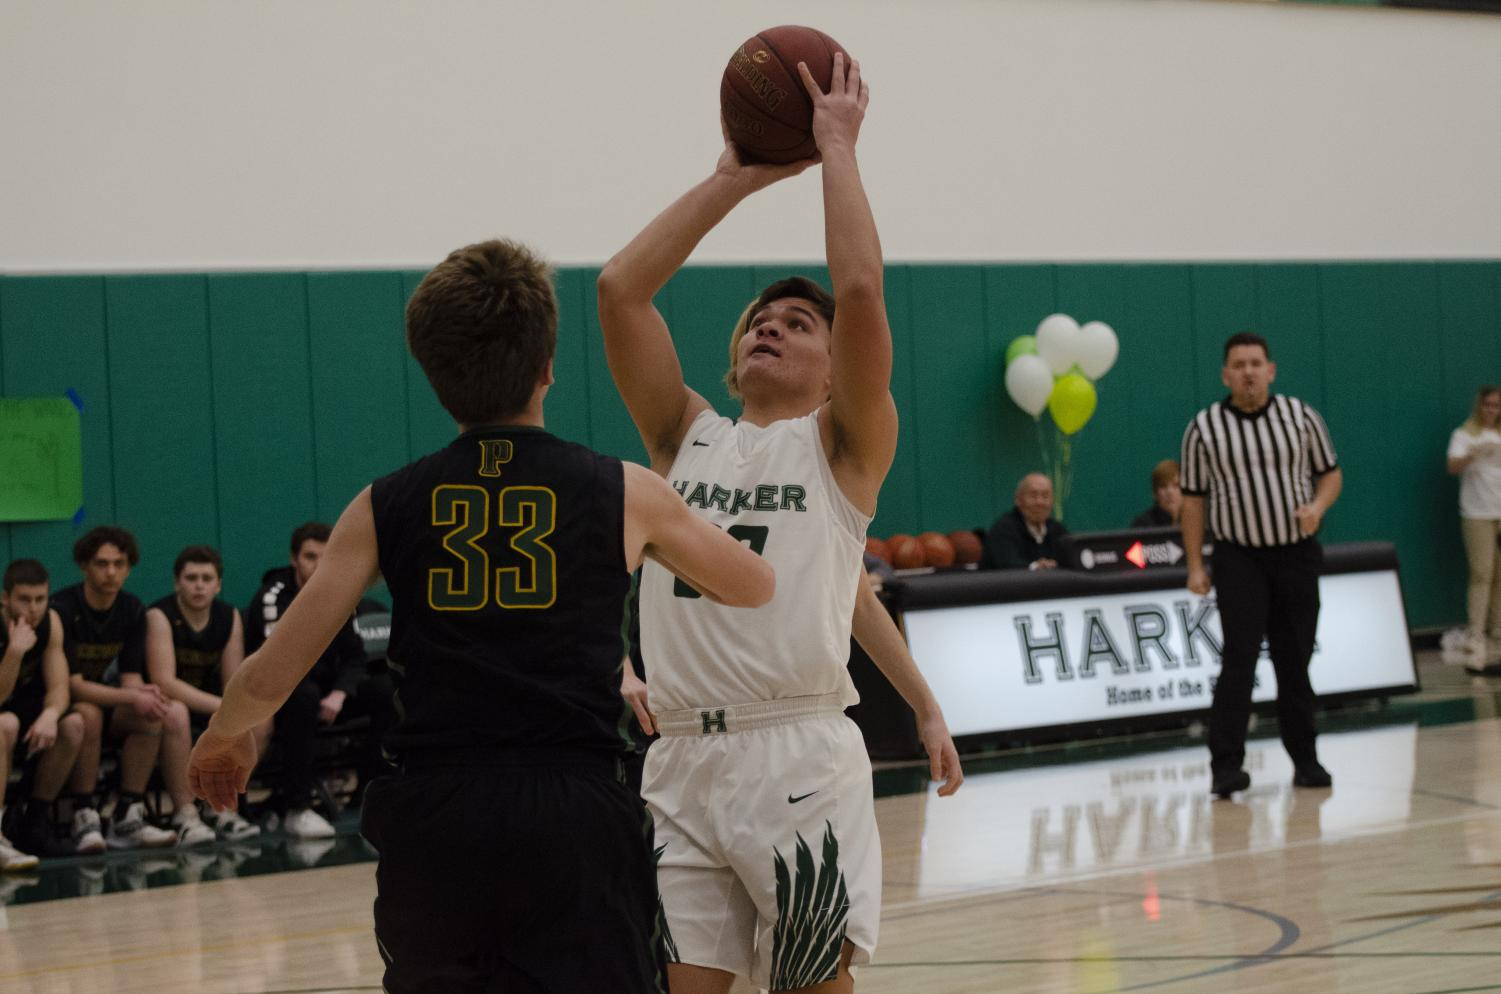 Trevor Thompson (12) attempts to score in the paint.  The varsity boys basketball team beat Pinewood 77-50 during their senior night game on Feb. 12, ending the regular season with a league record of 6-8.